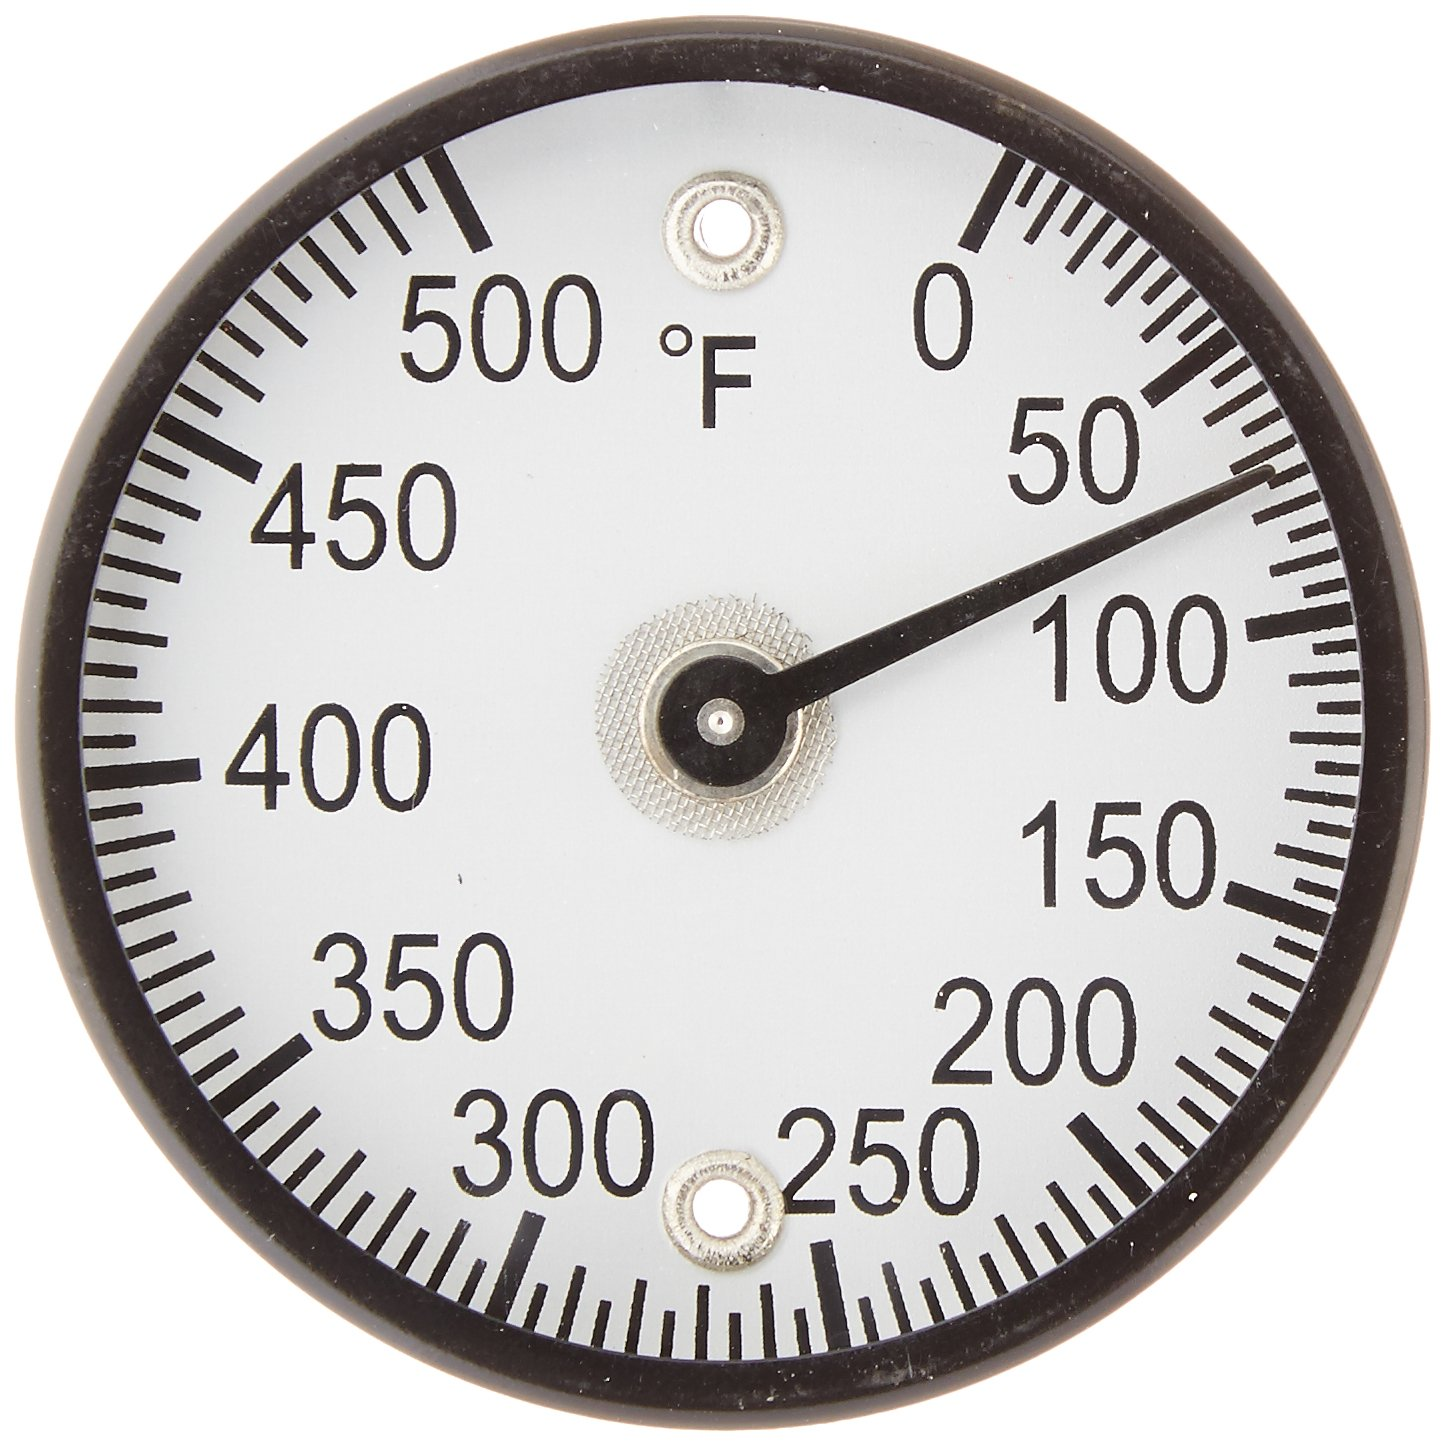 "PIC Gauge B2MS-Q 2"" Dial Size, 50/500°F, Surface Mount, Magnetic Connection, Black Steel Case Surface Mount Thermometer PIC Gauges"